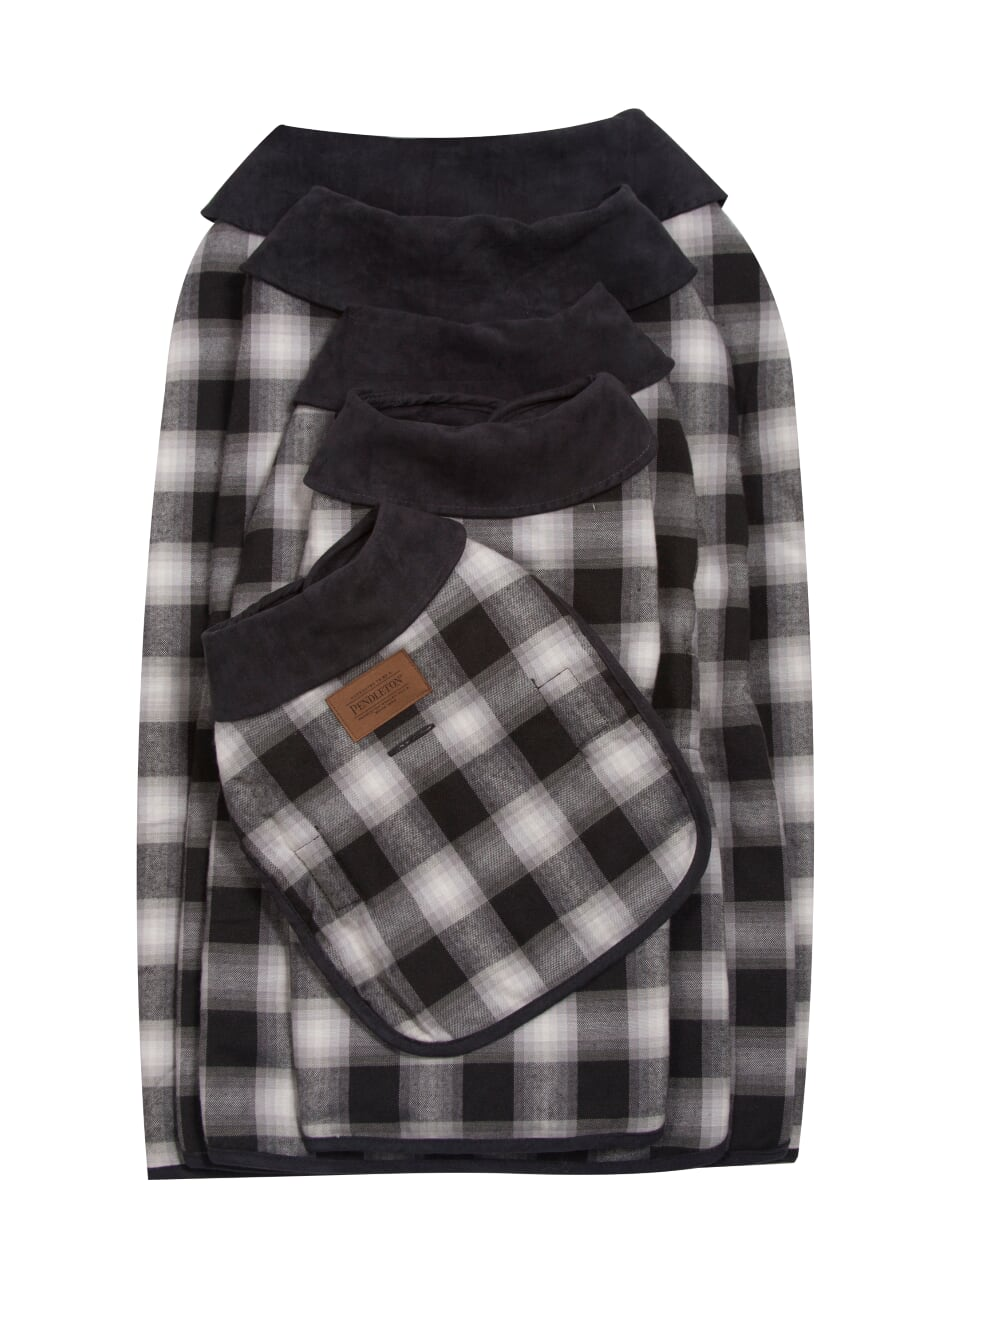 Pendleton Designer Charcoal Ombre Plaid Reversible Warm Dog Coat Jacket